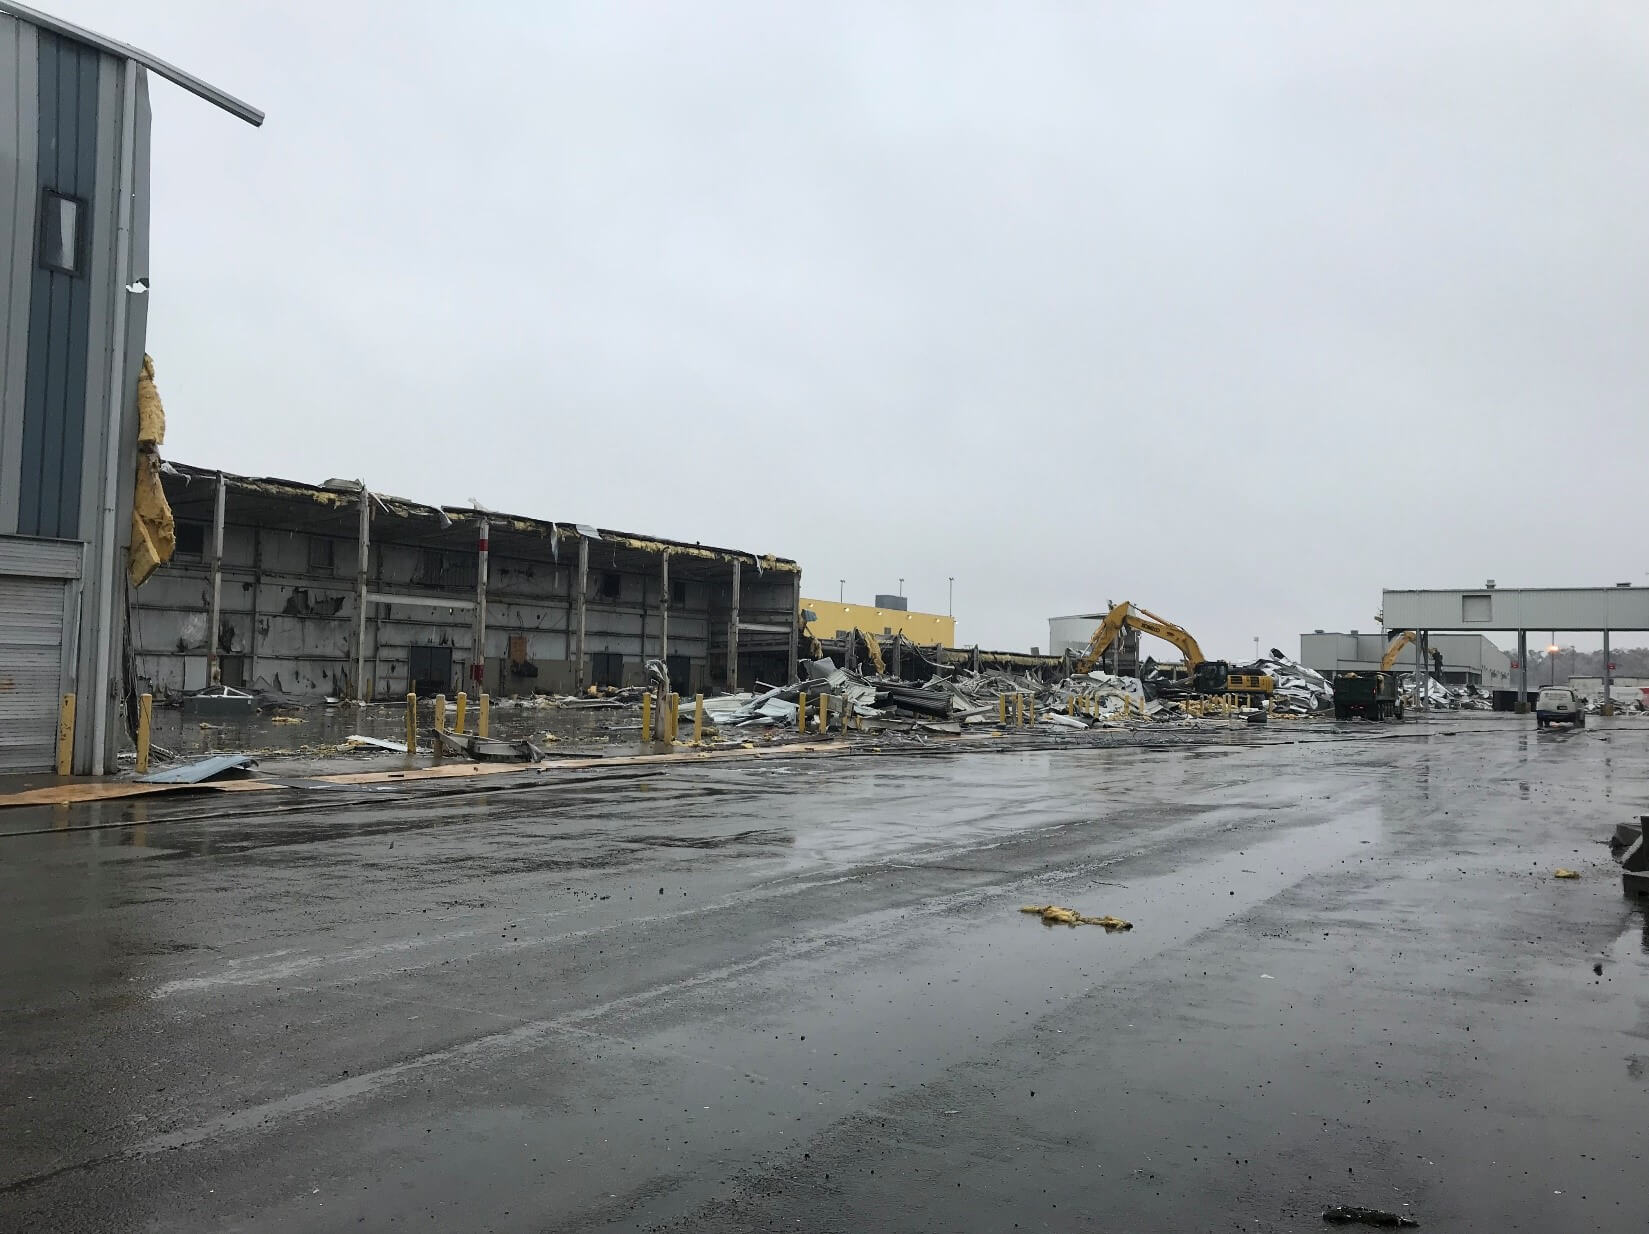 Building Demolition at Amazon for Project Indigo in Northern Kentucky